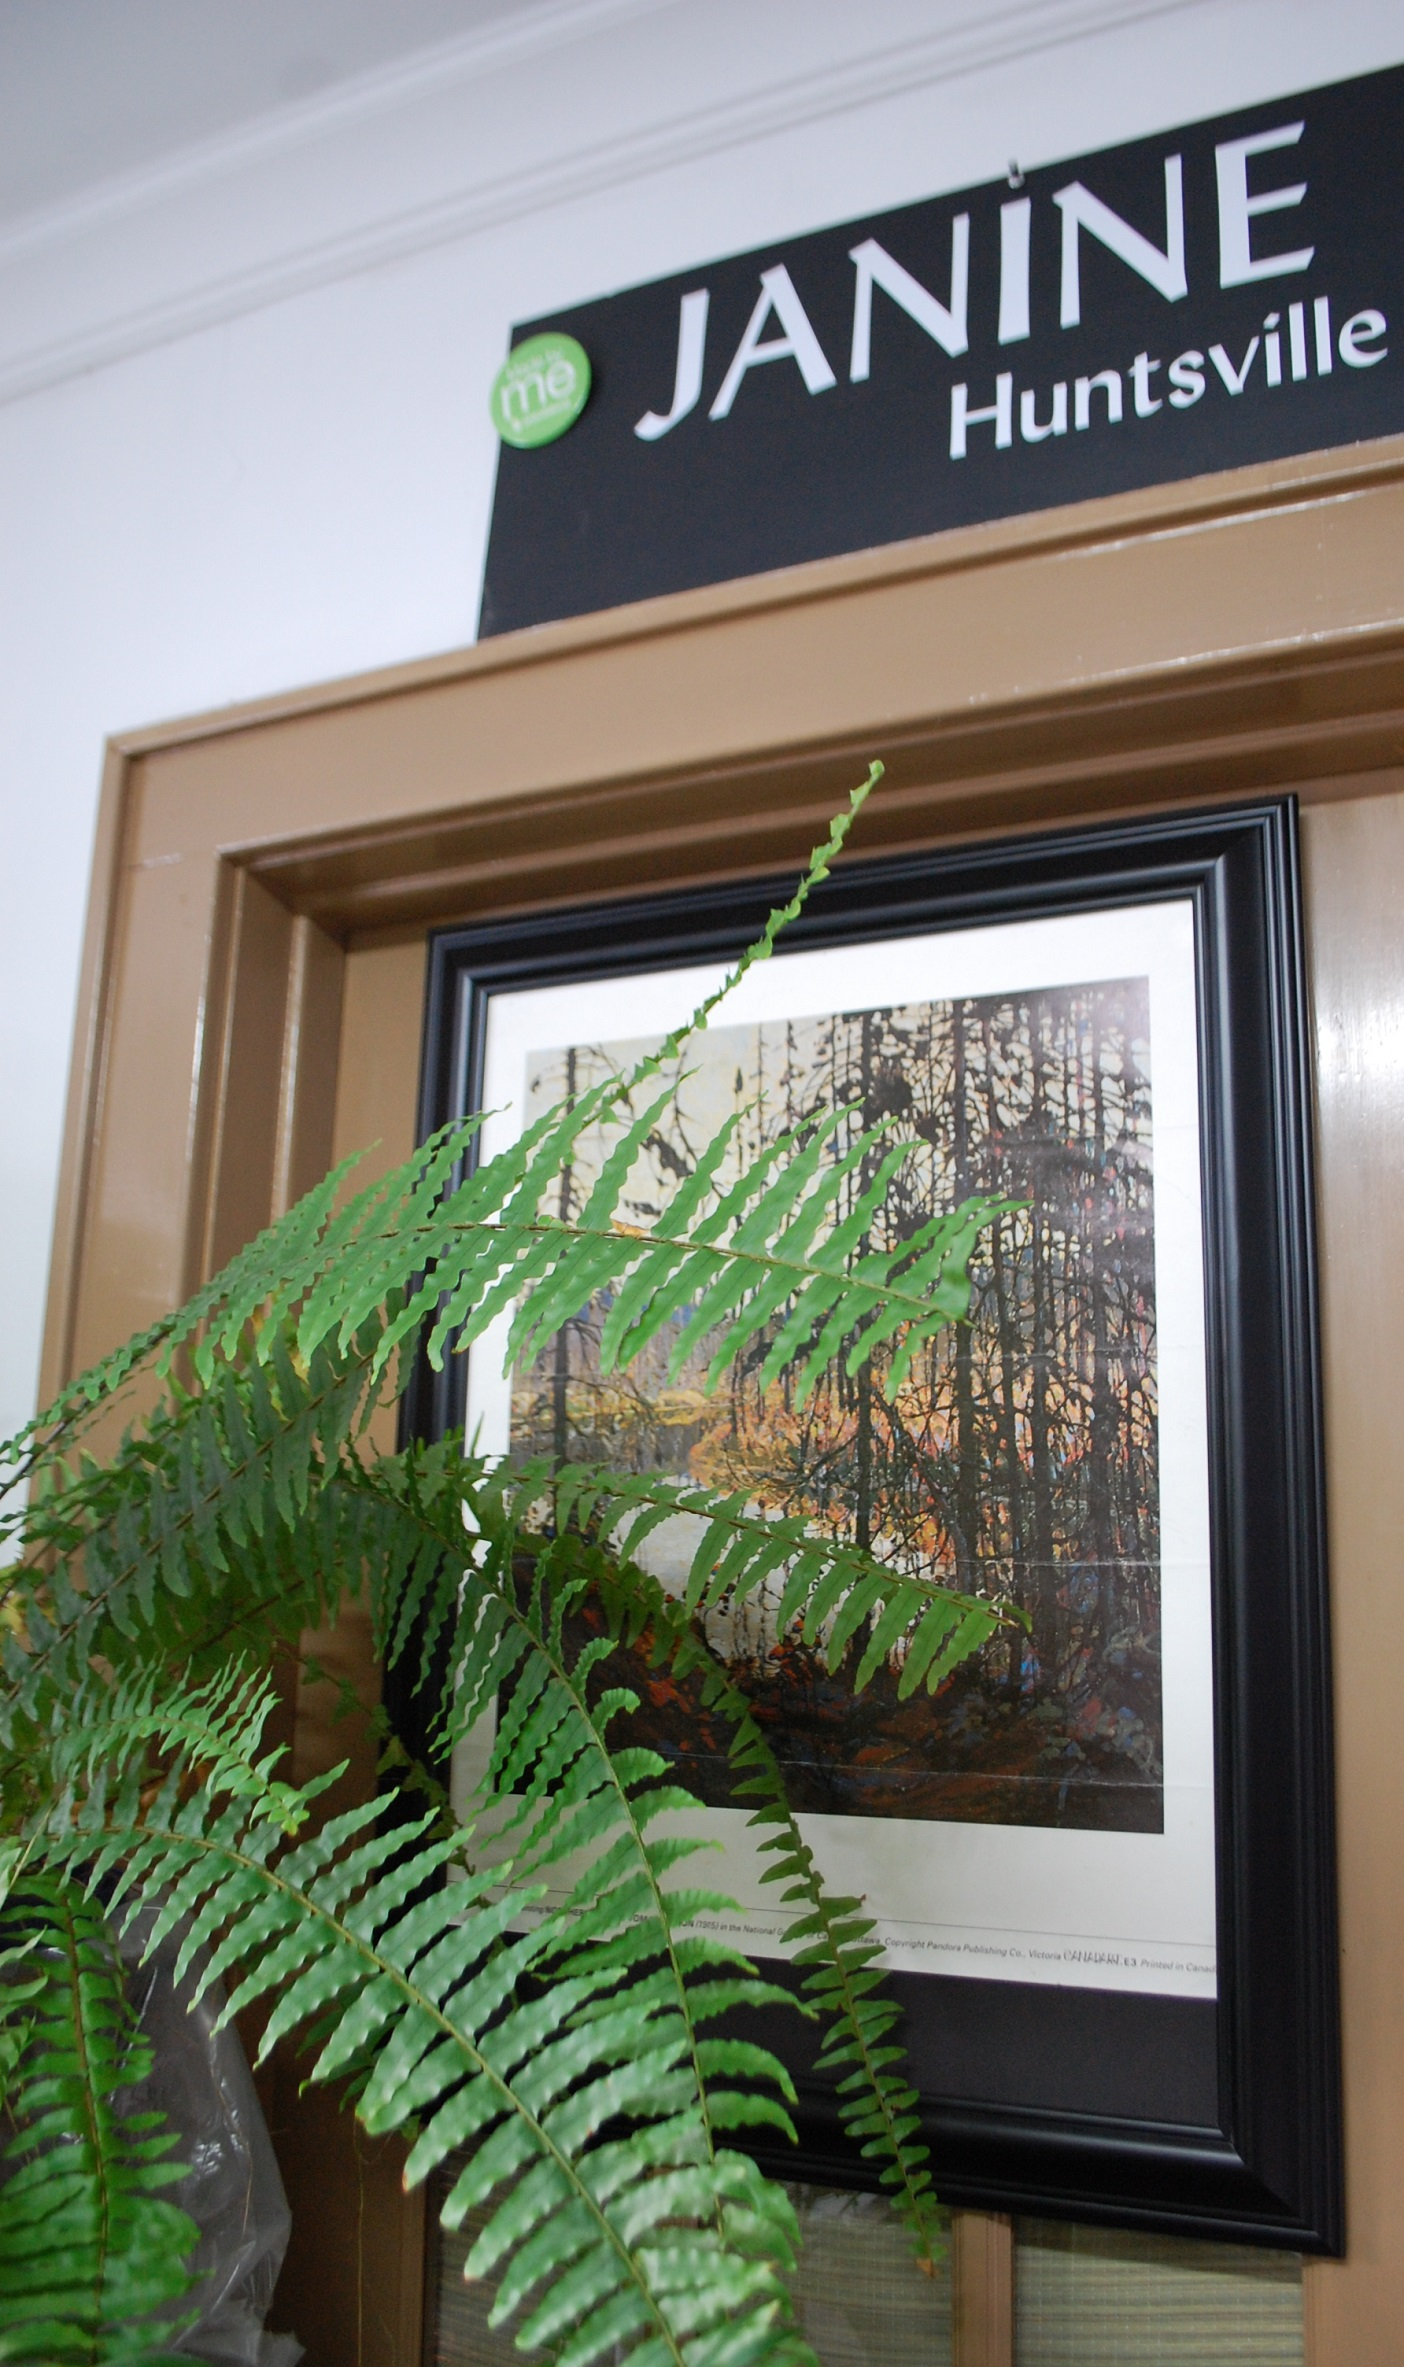 Marson's old poster of Tom Thomson's Northern River has been an inspiration and now hangs in her studio